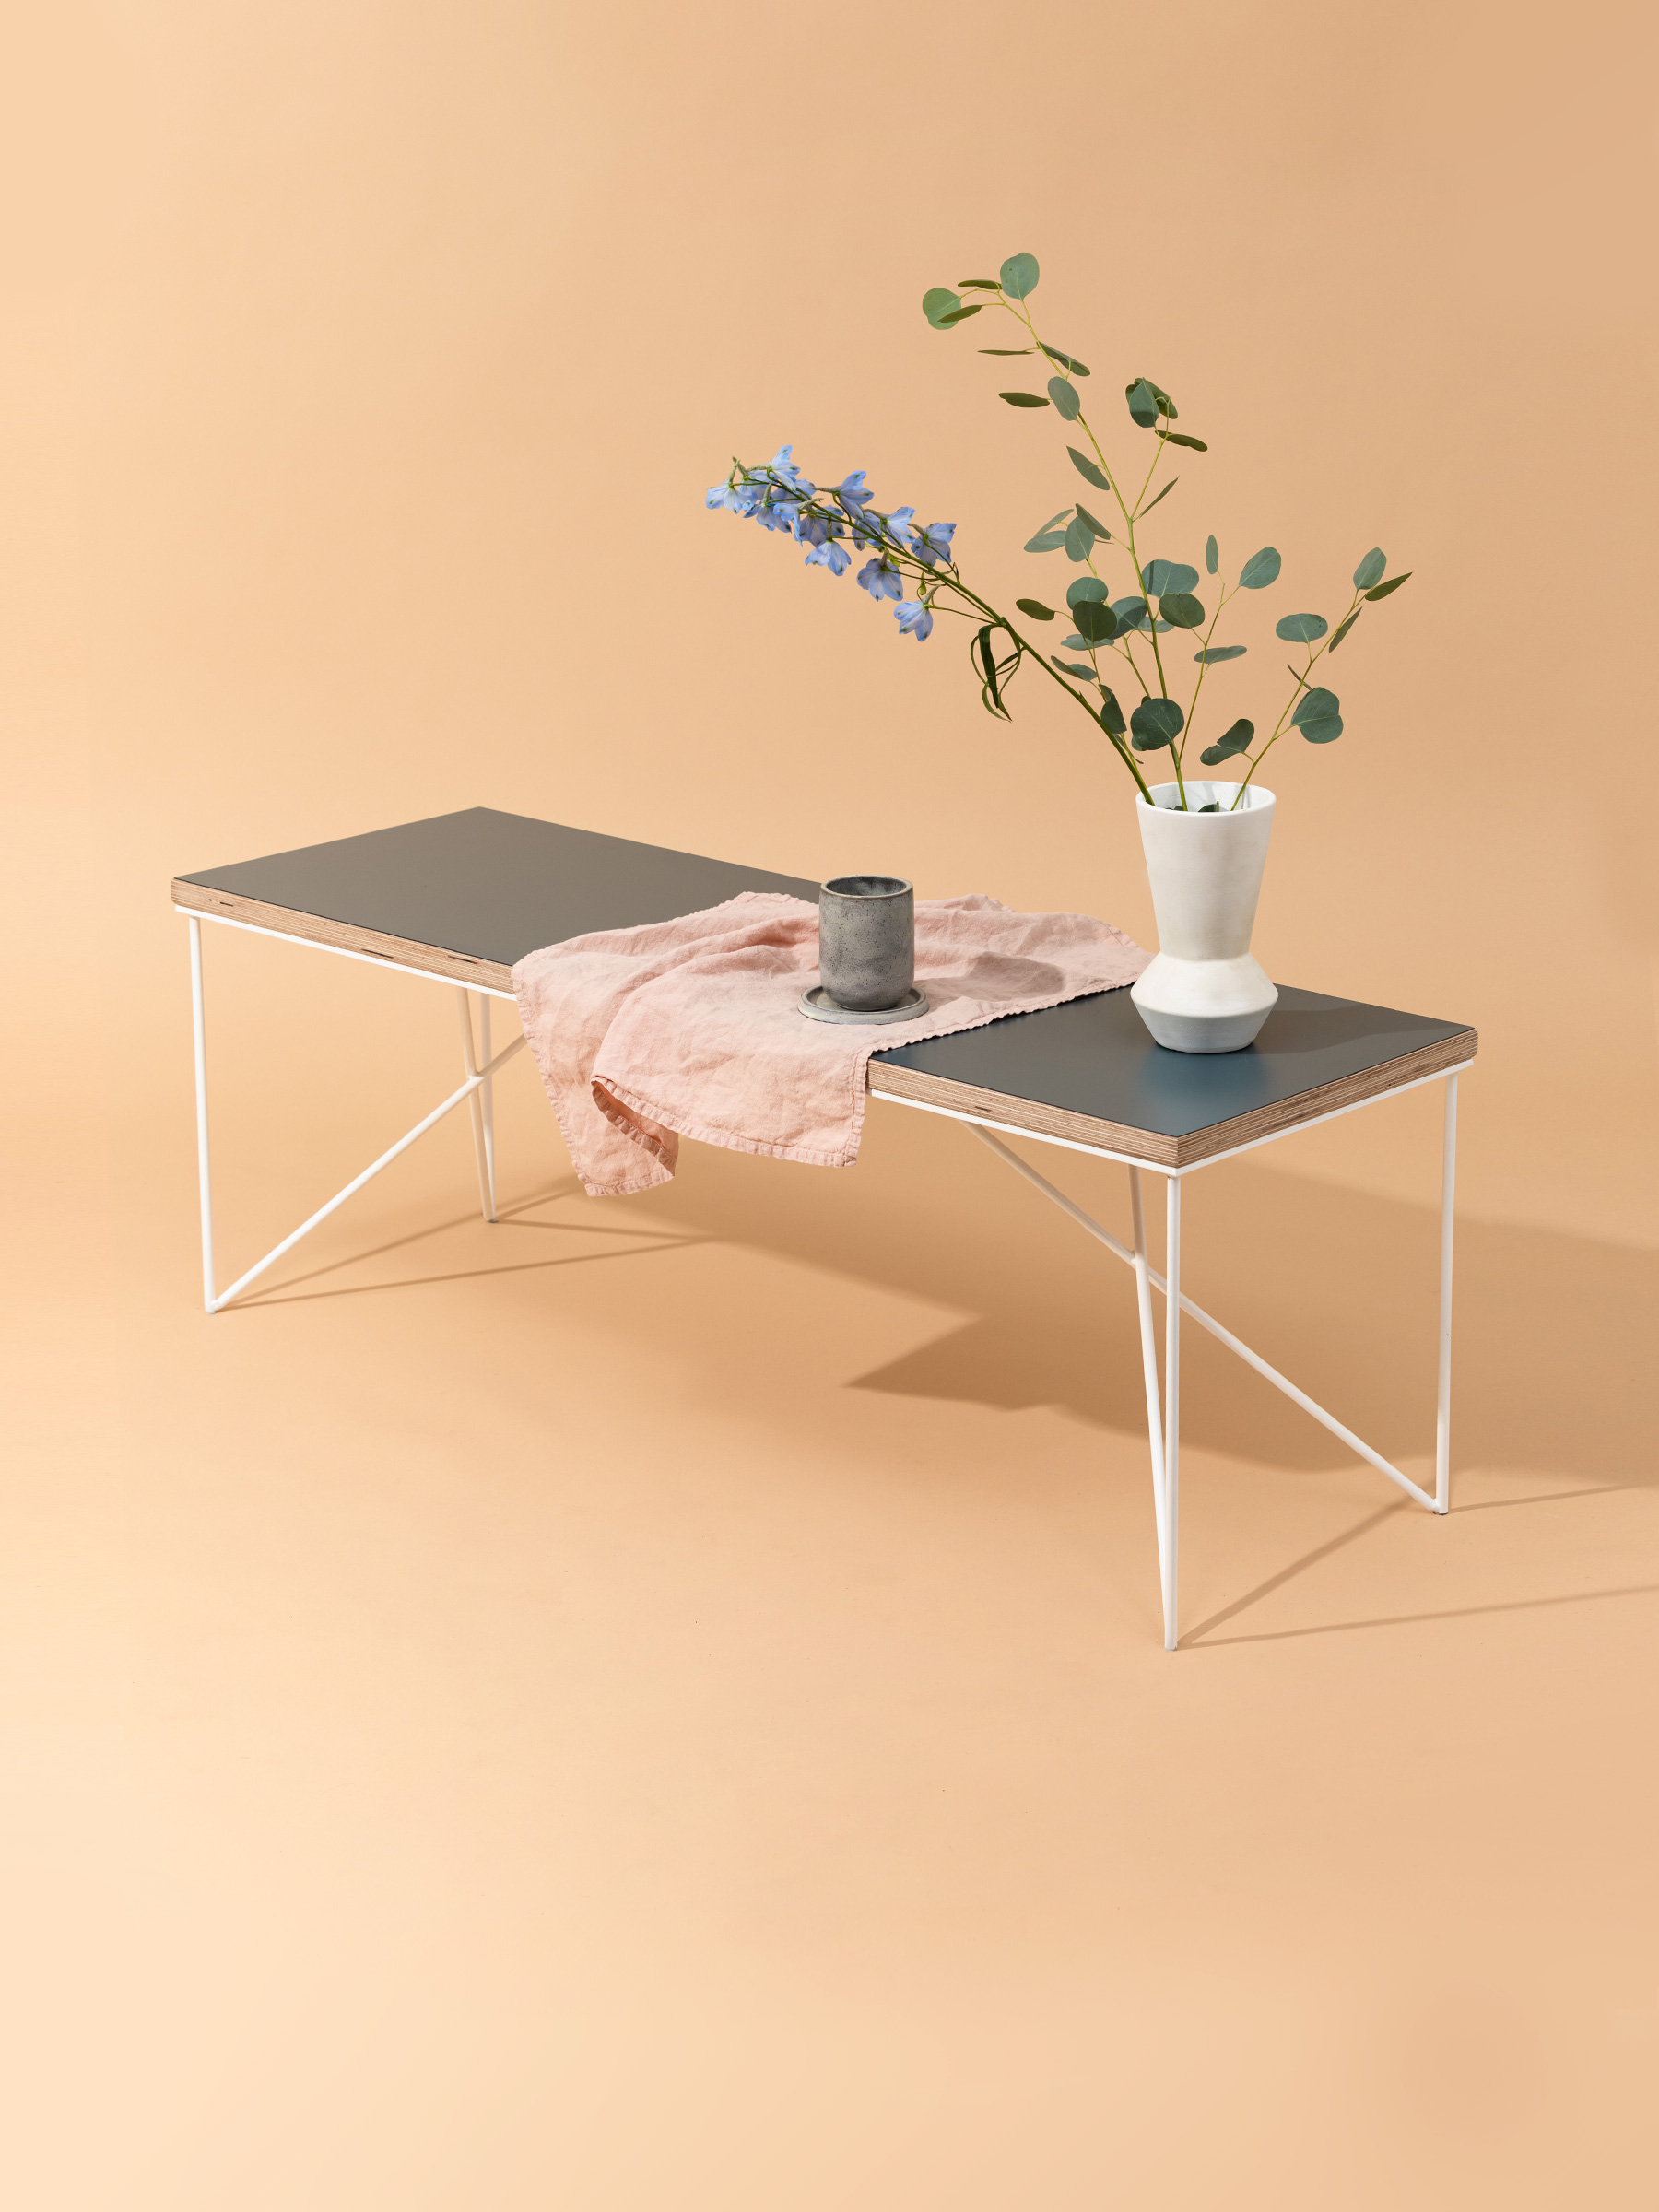 Introducing Hunker Made, Our New Furniture Brand